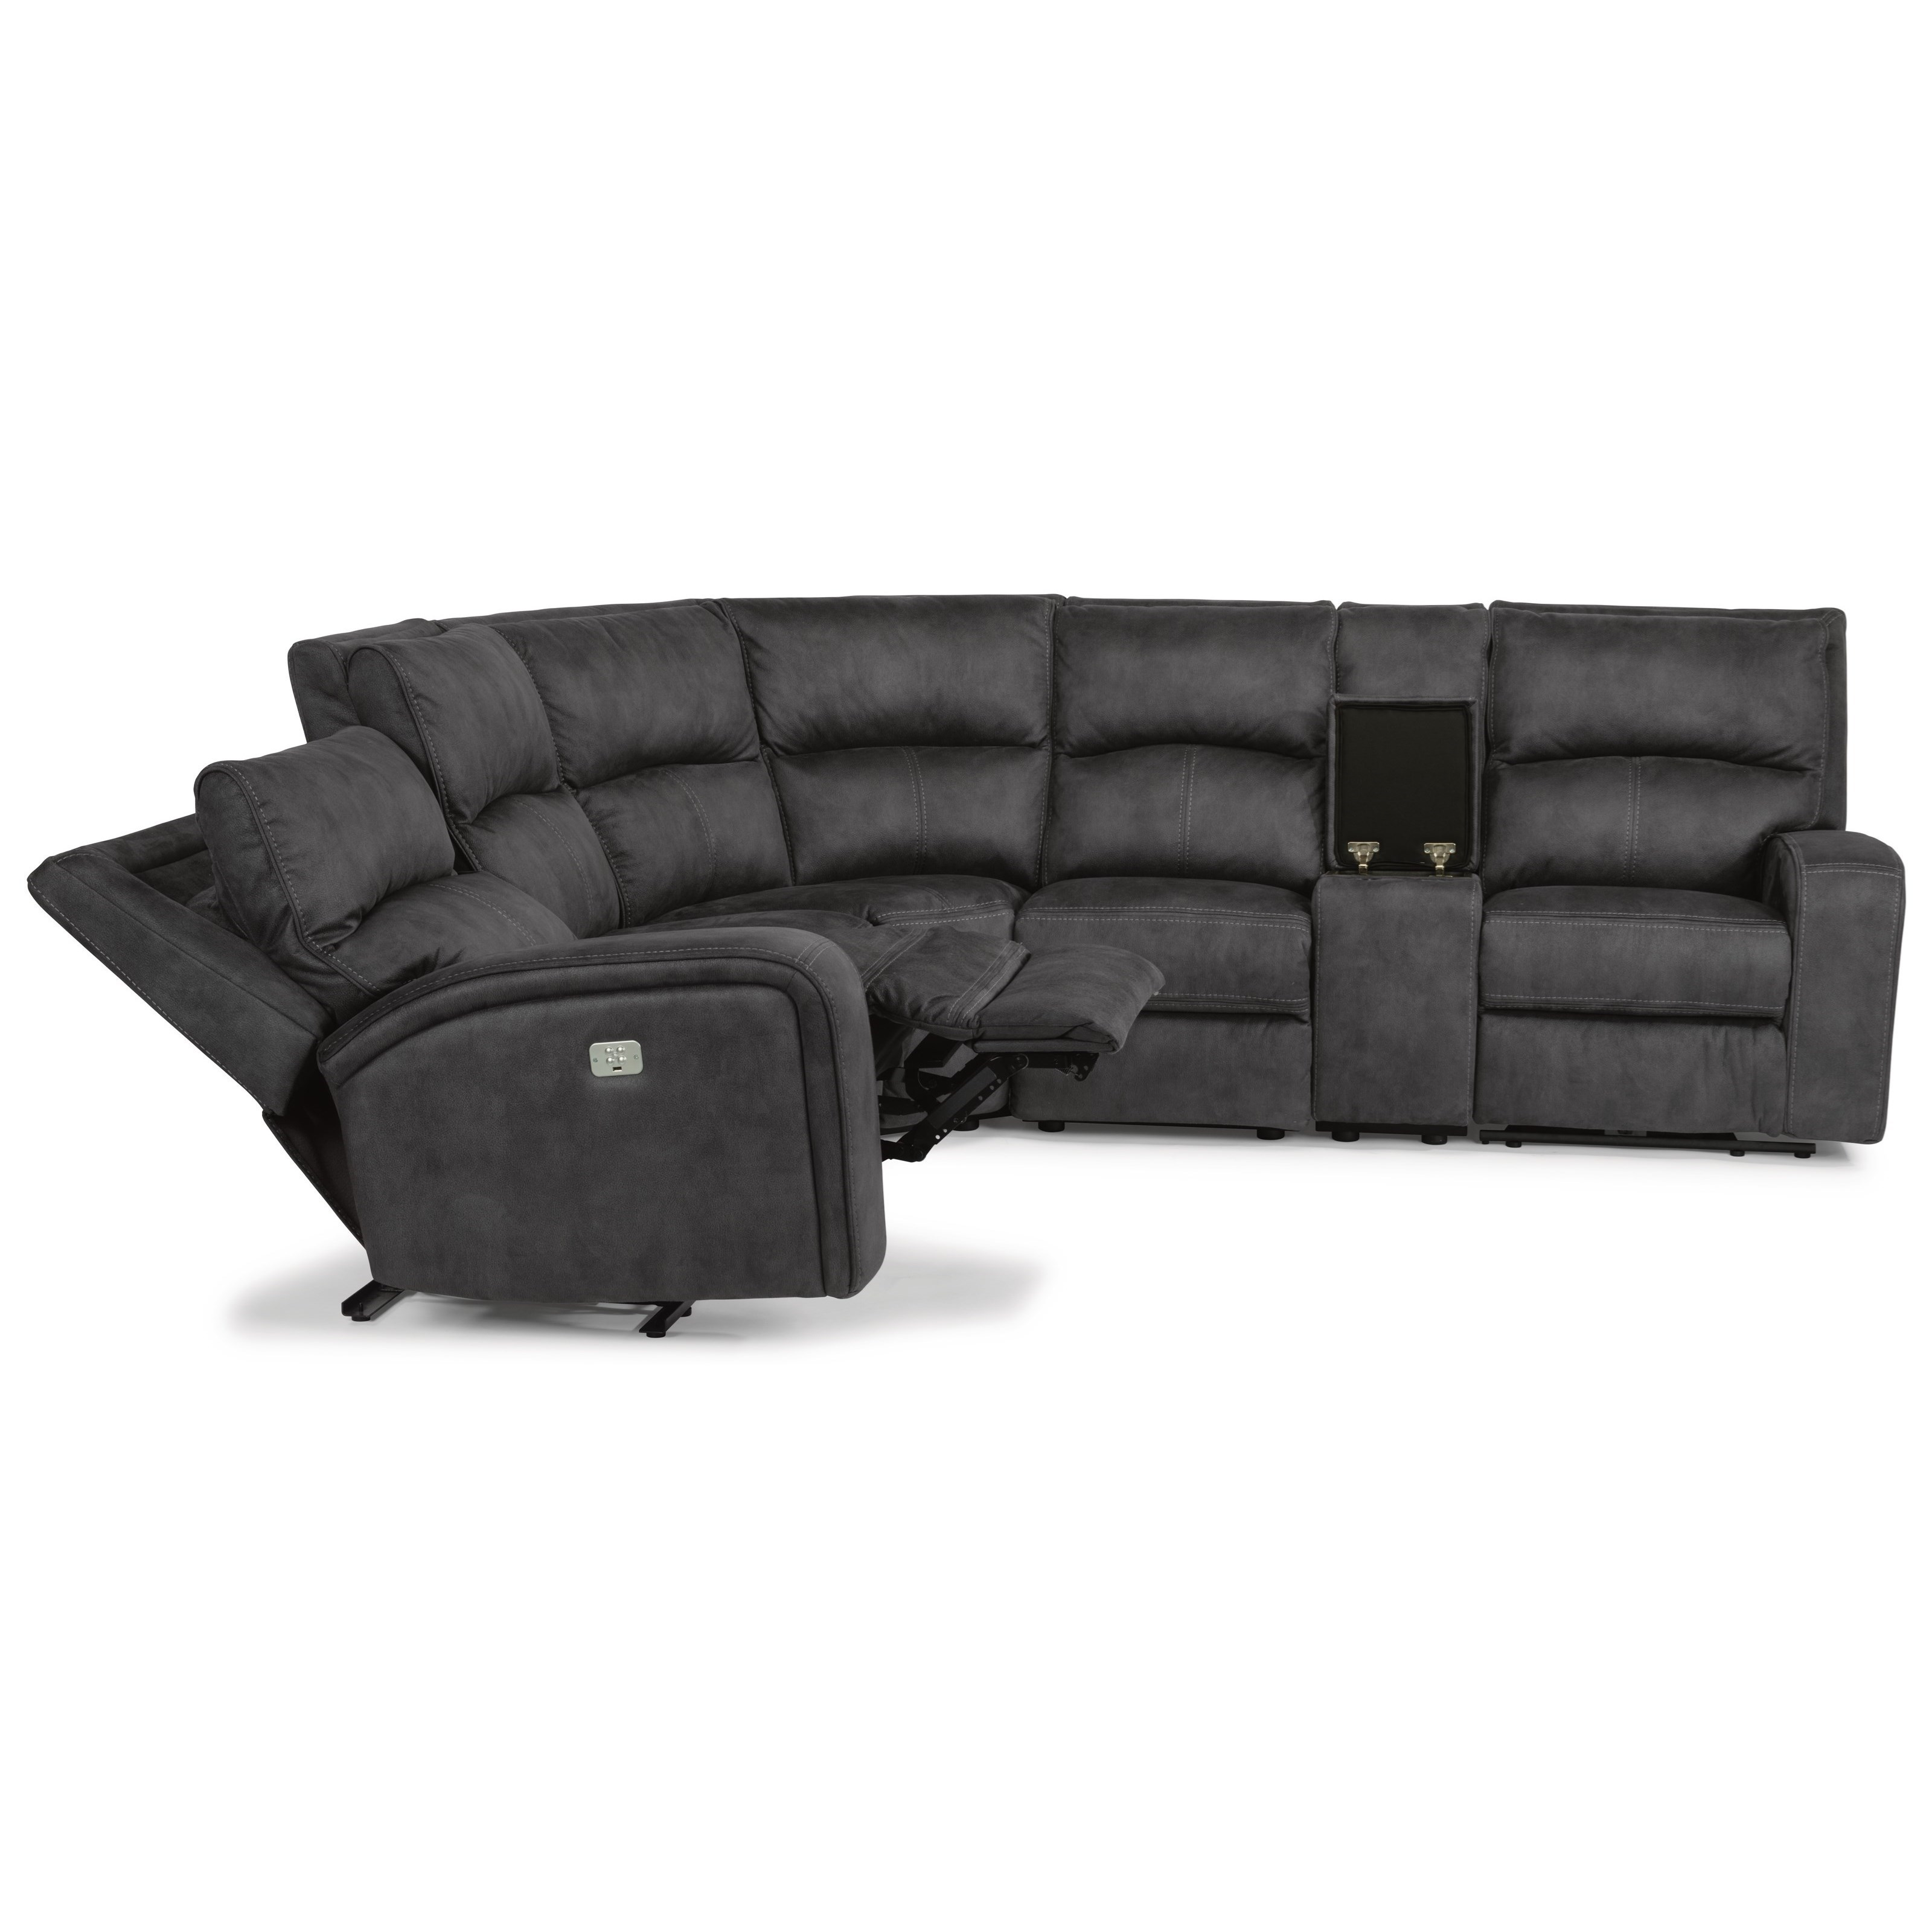 Contemporary Power Reclining 5 Seat Sectional with Power Headrests, USB Ports and Console